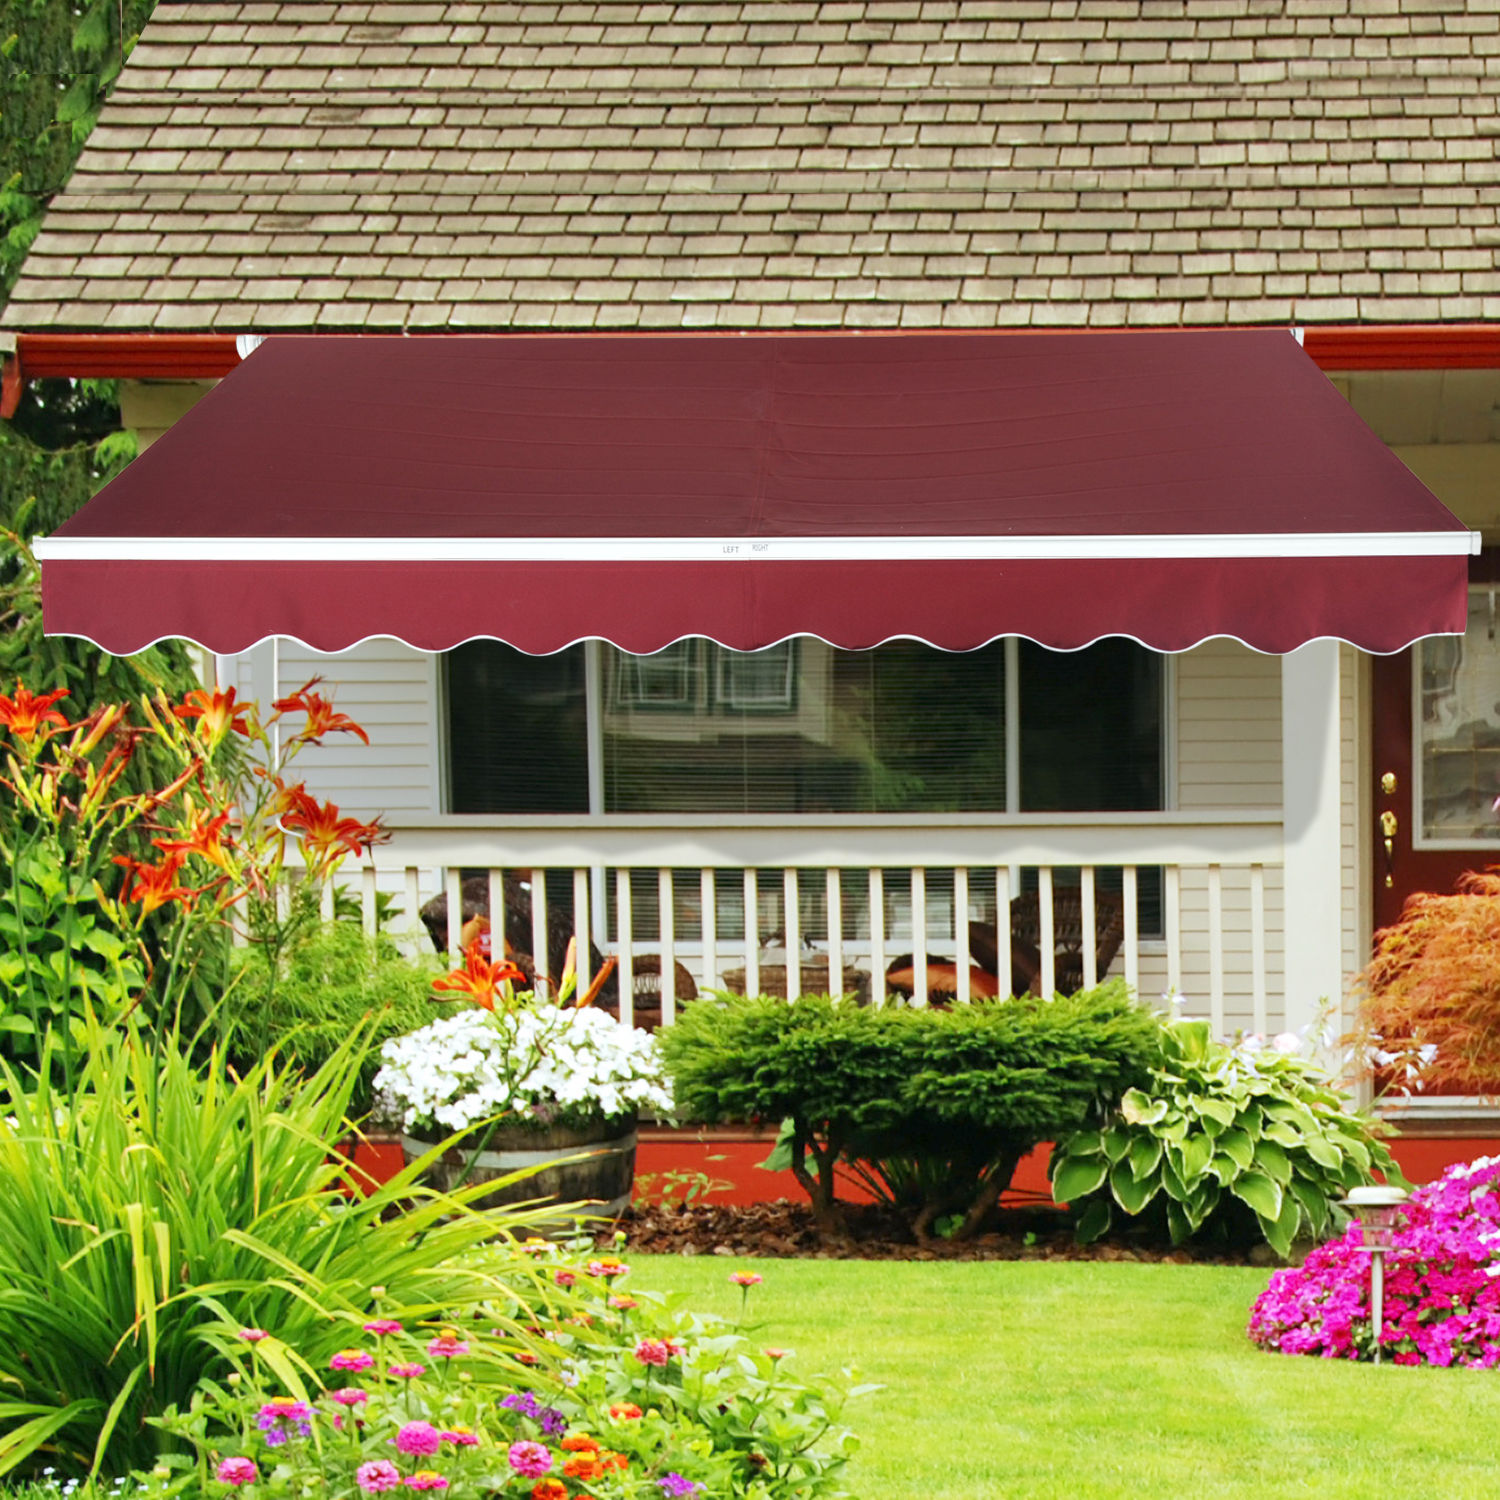 Patio-Awning-Canopy-Retractable-Deck-Door-Outdoor-Sun- : sun canopies for patios - memphite.com